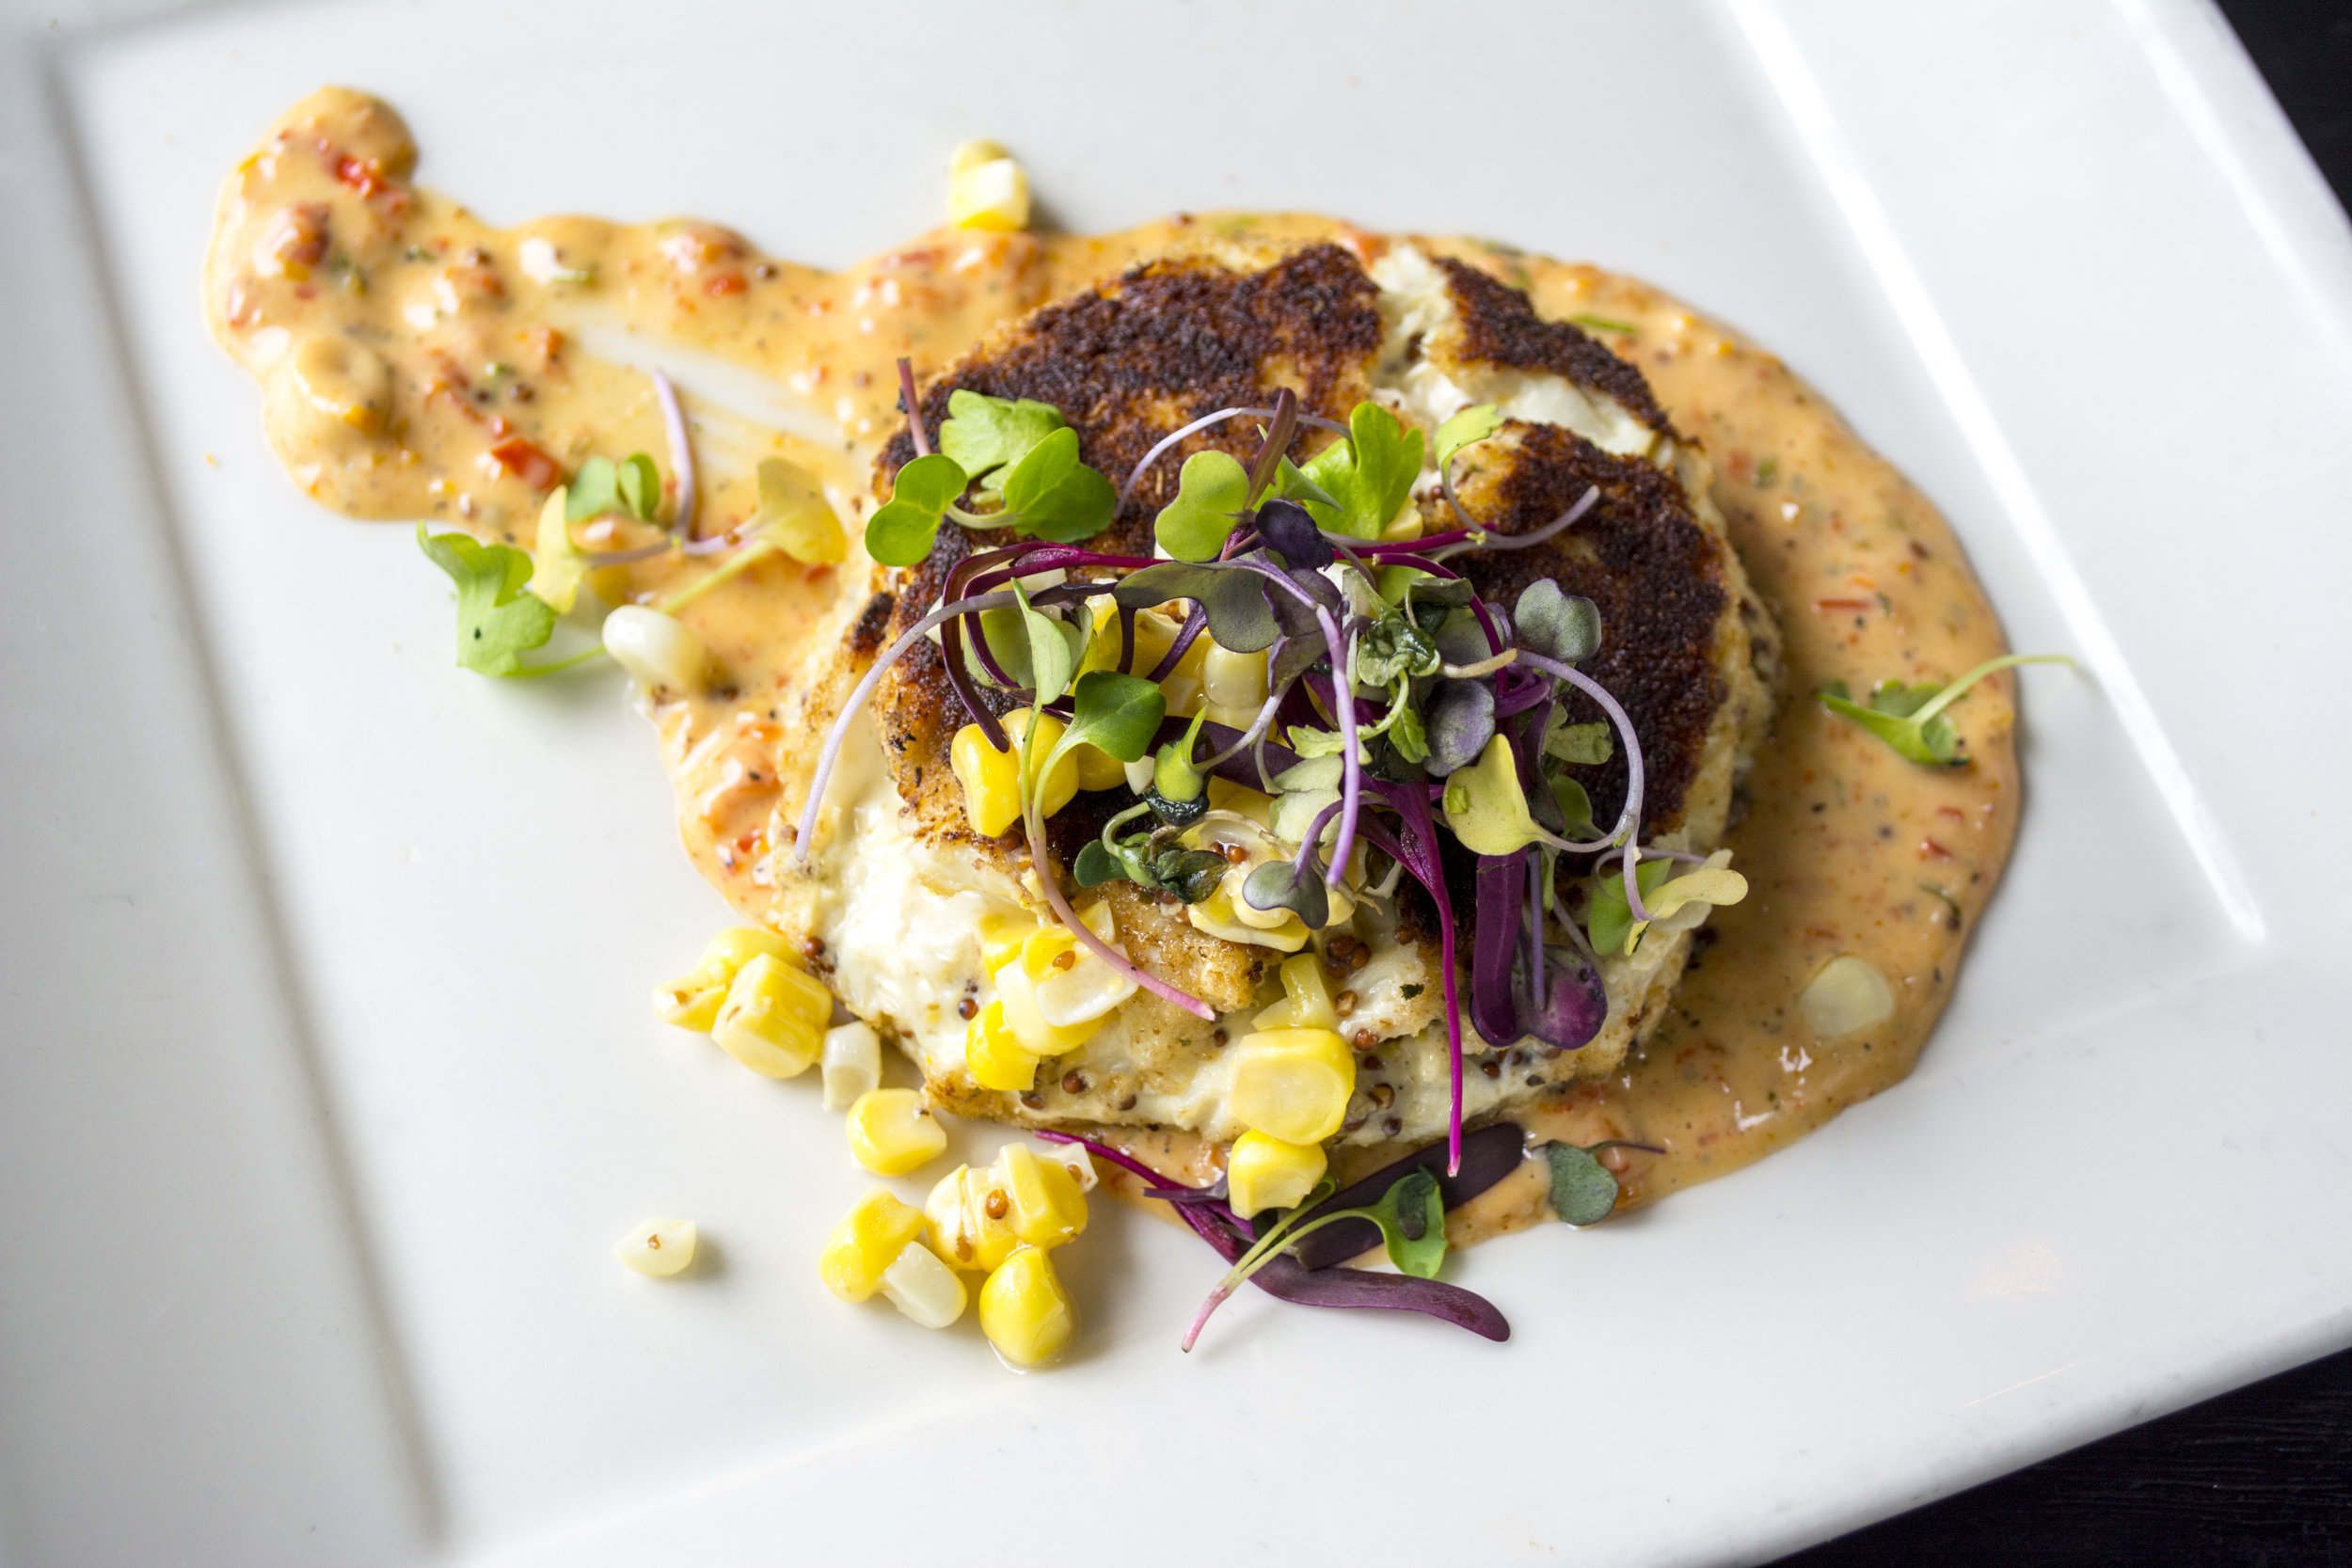 The Crab Cake ($16) includes lump crabmeat, pickled pepper remoulade and roasted corn salad.